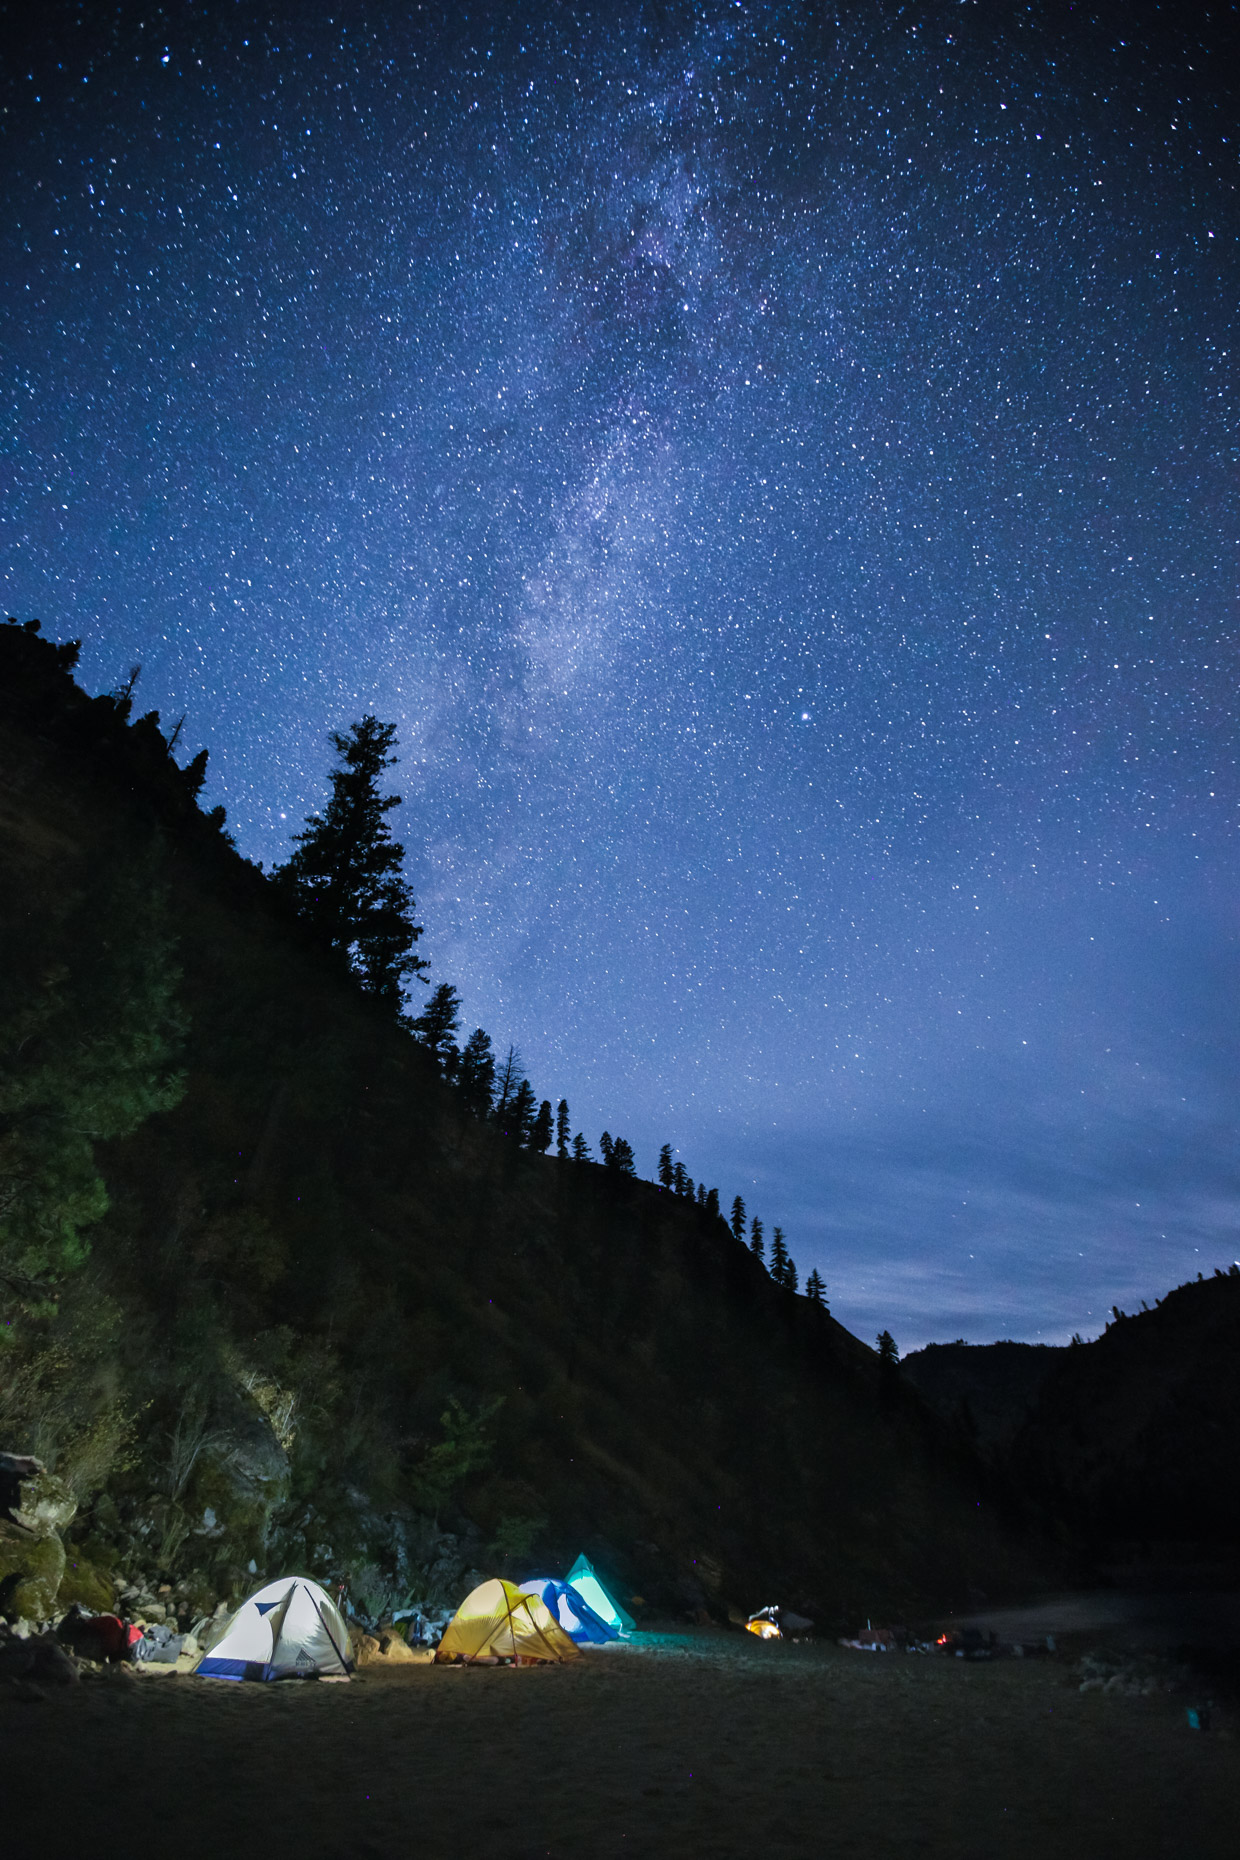 Stars over camp along the Salmon River